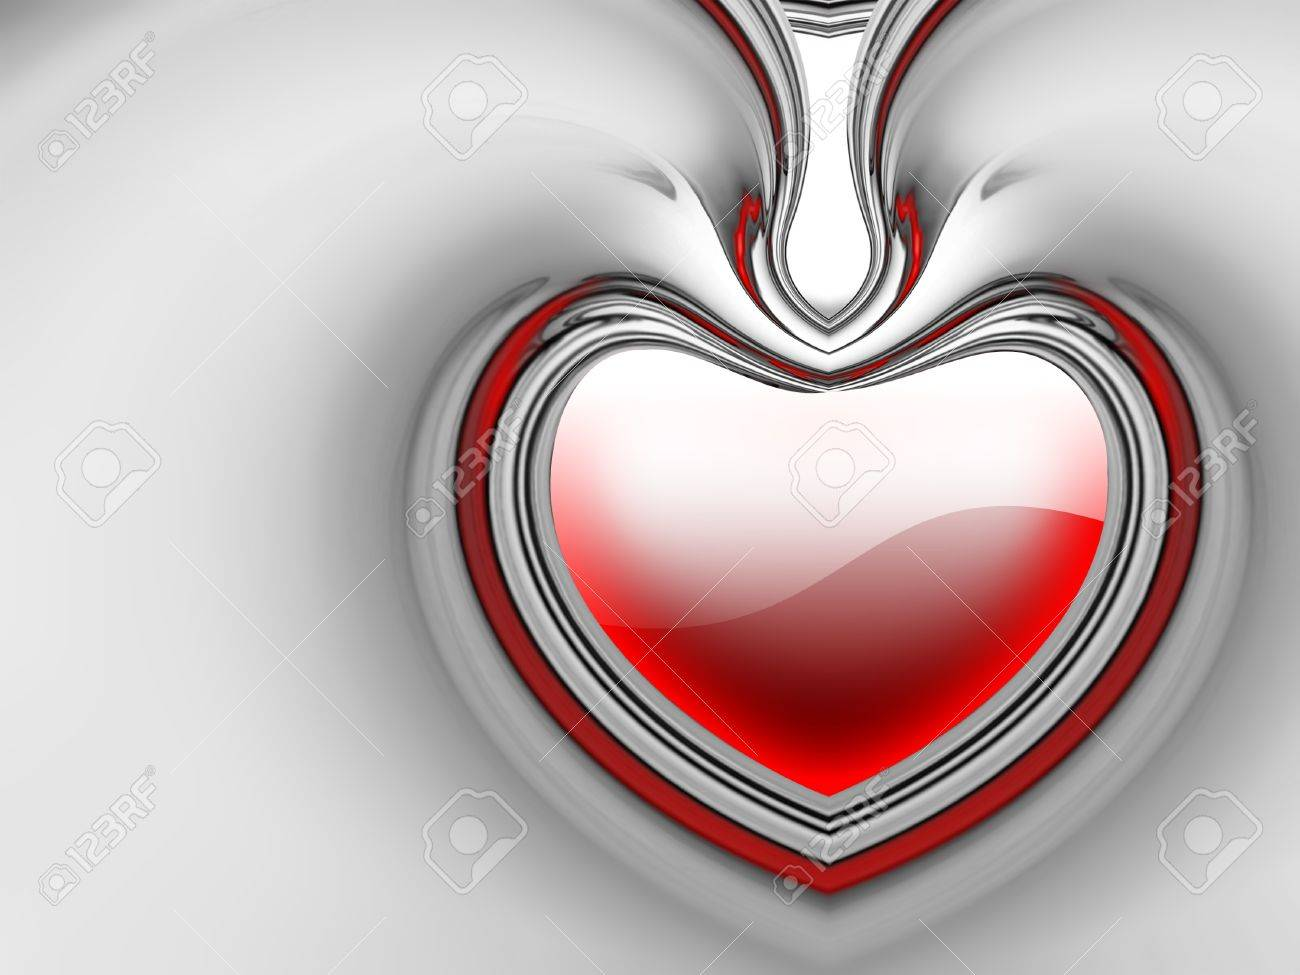 chrome red heart on a gray background Stock Photo - 10919997